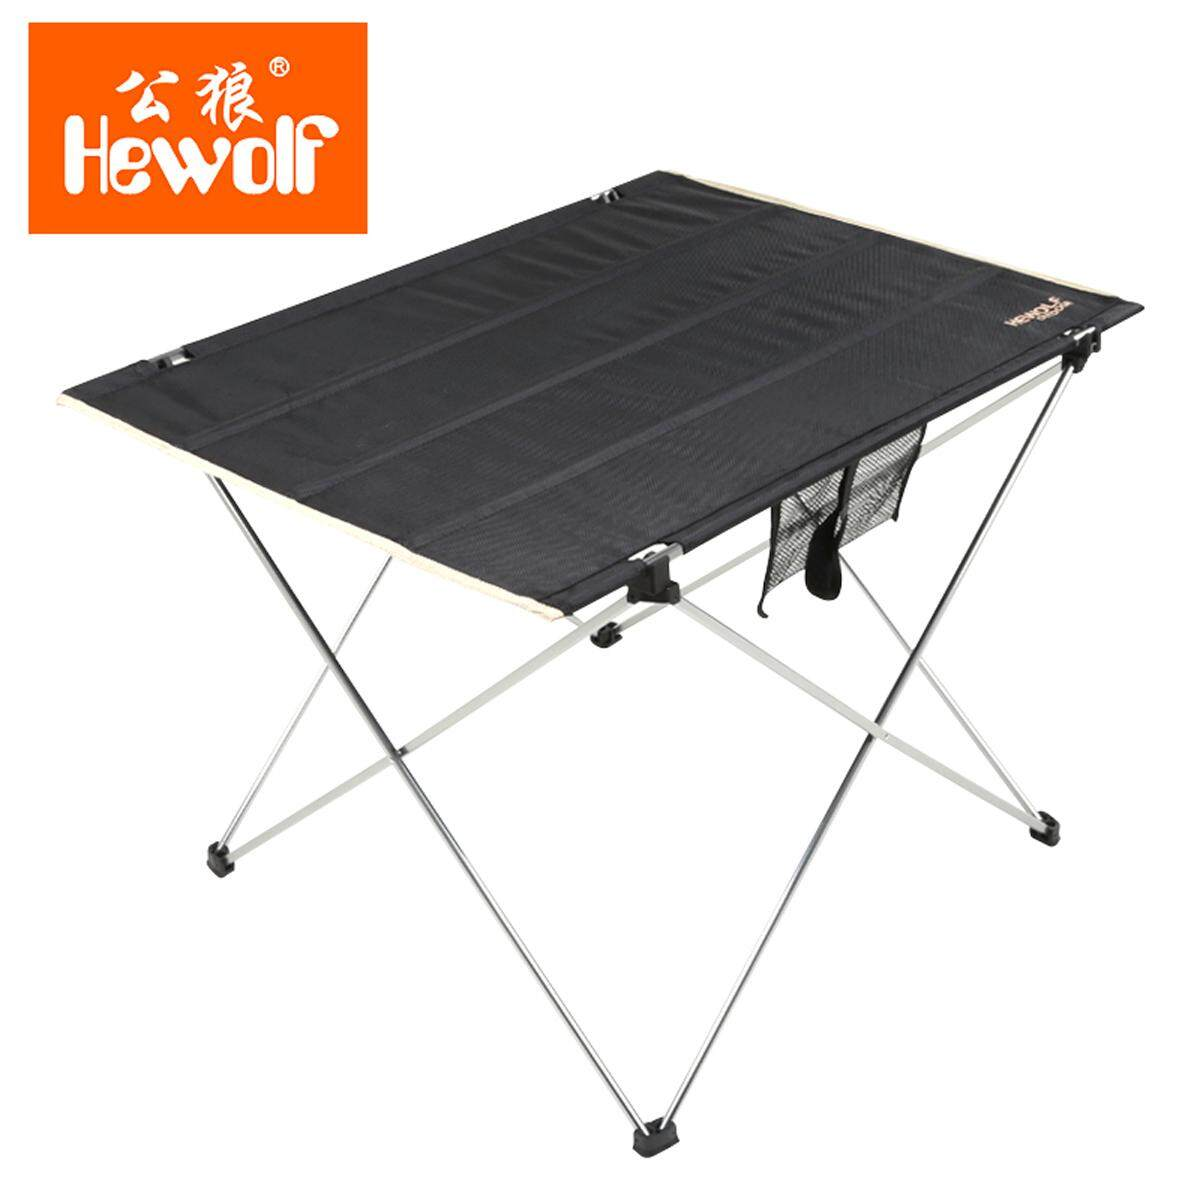 Portable Foldable Aluminium Table Camping Outdoor Fishing Table